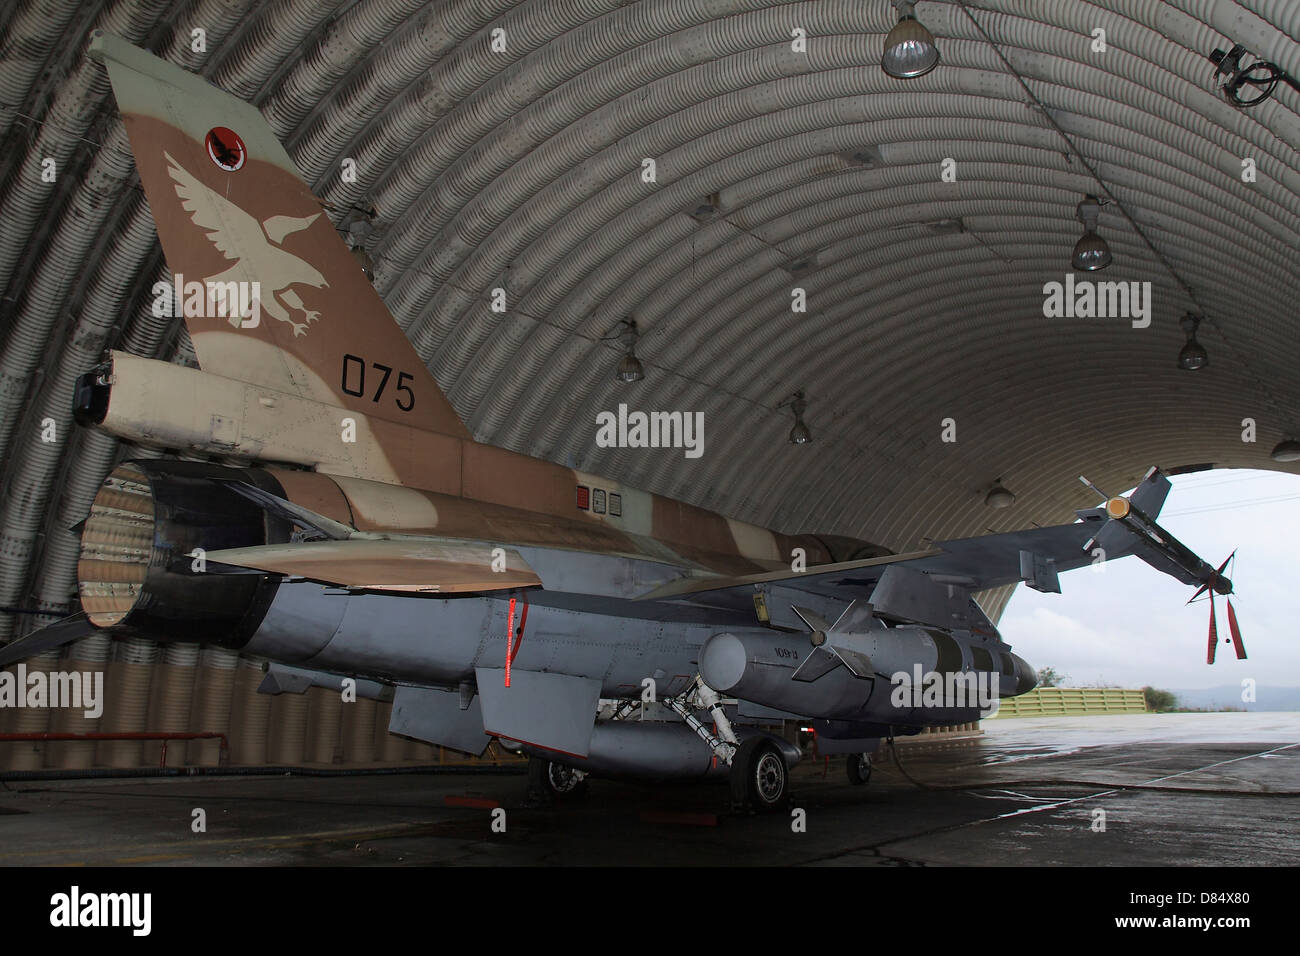 An F-16D Barak of the Israeli Air Force armed with JDAM bomb. - Stock Image